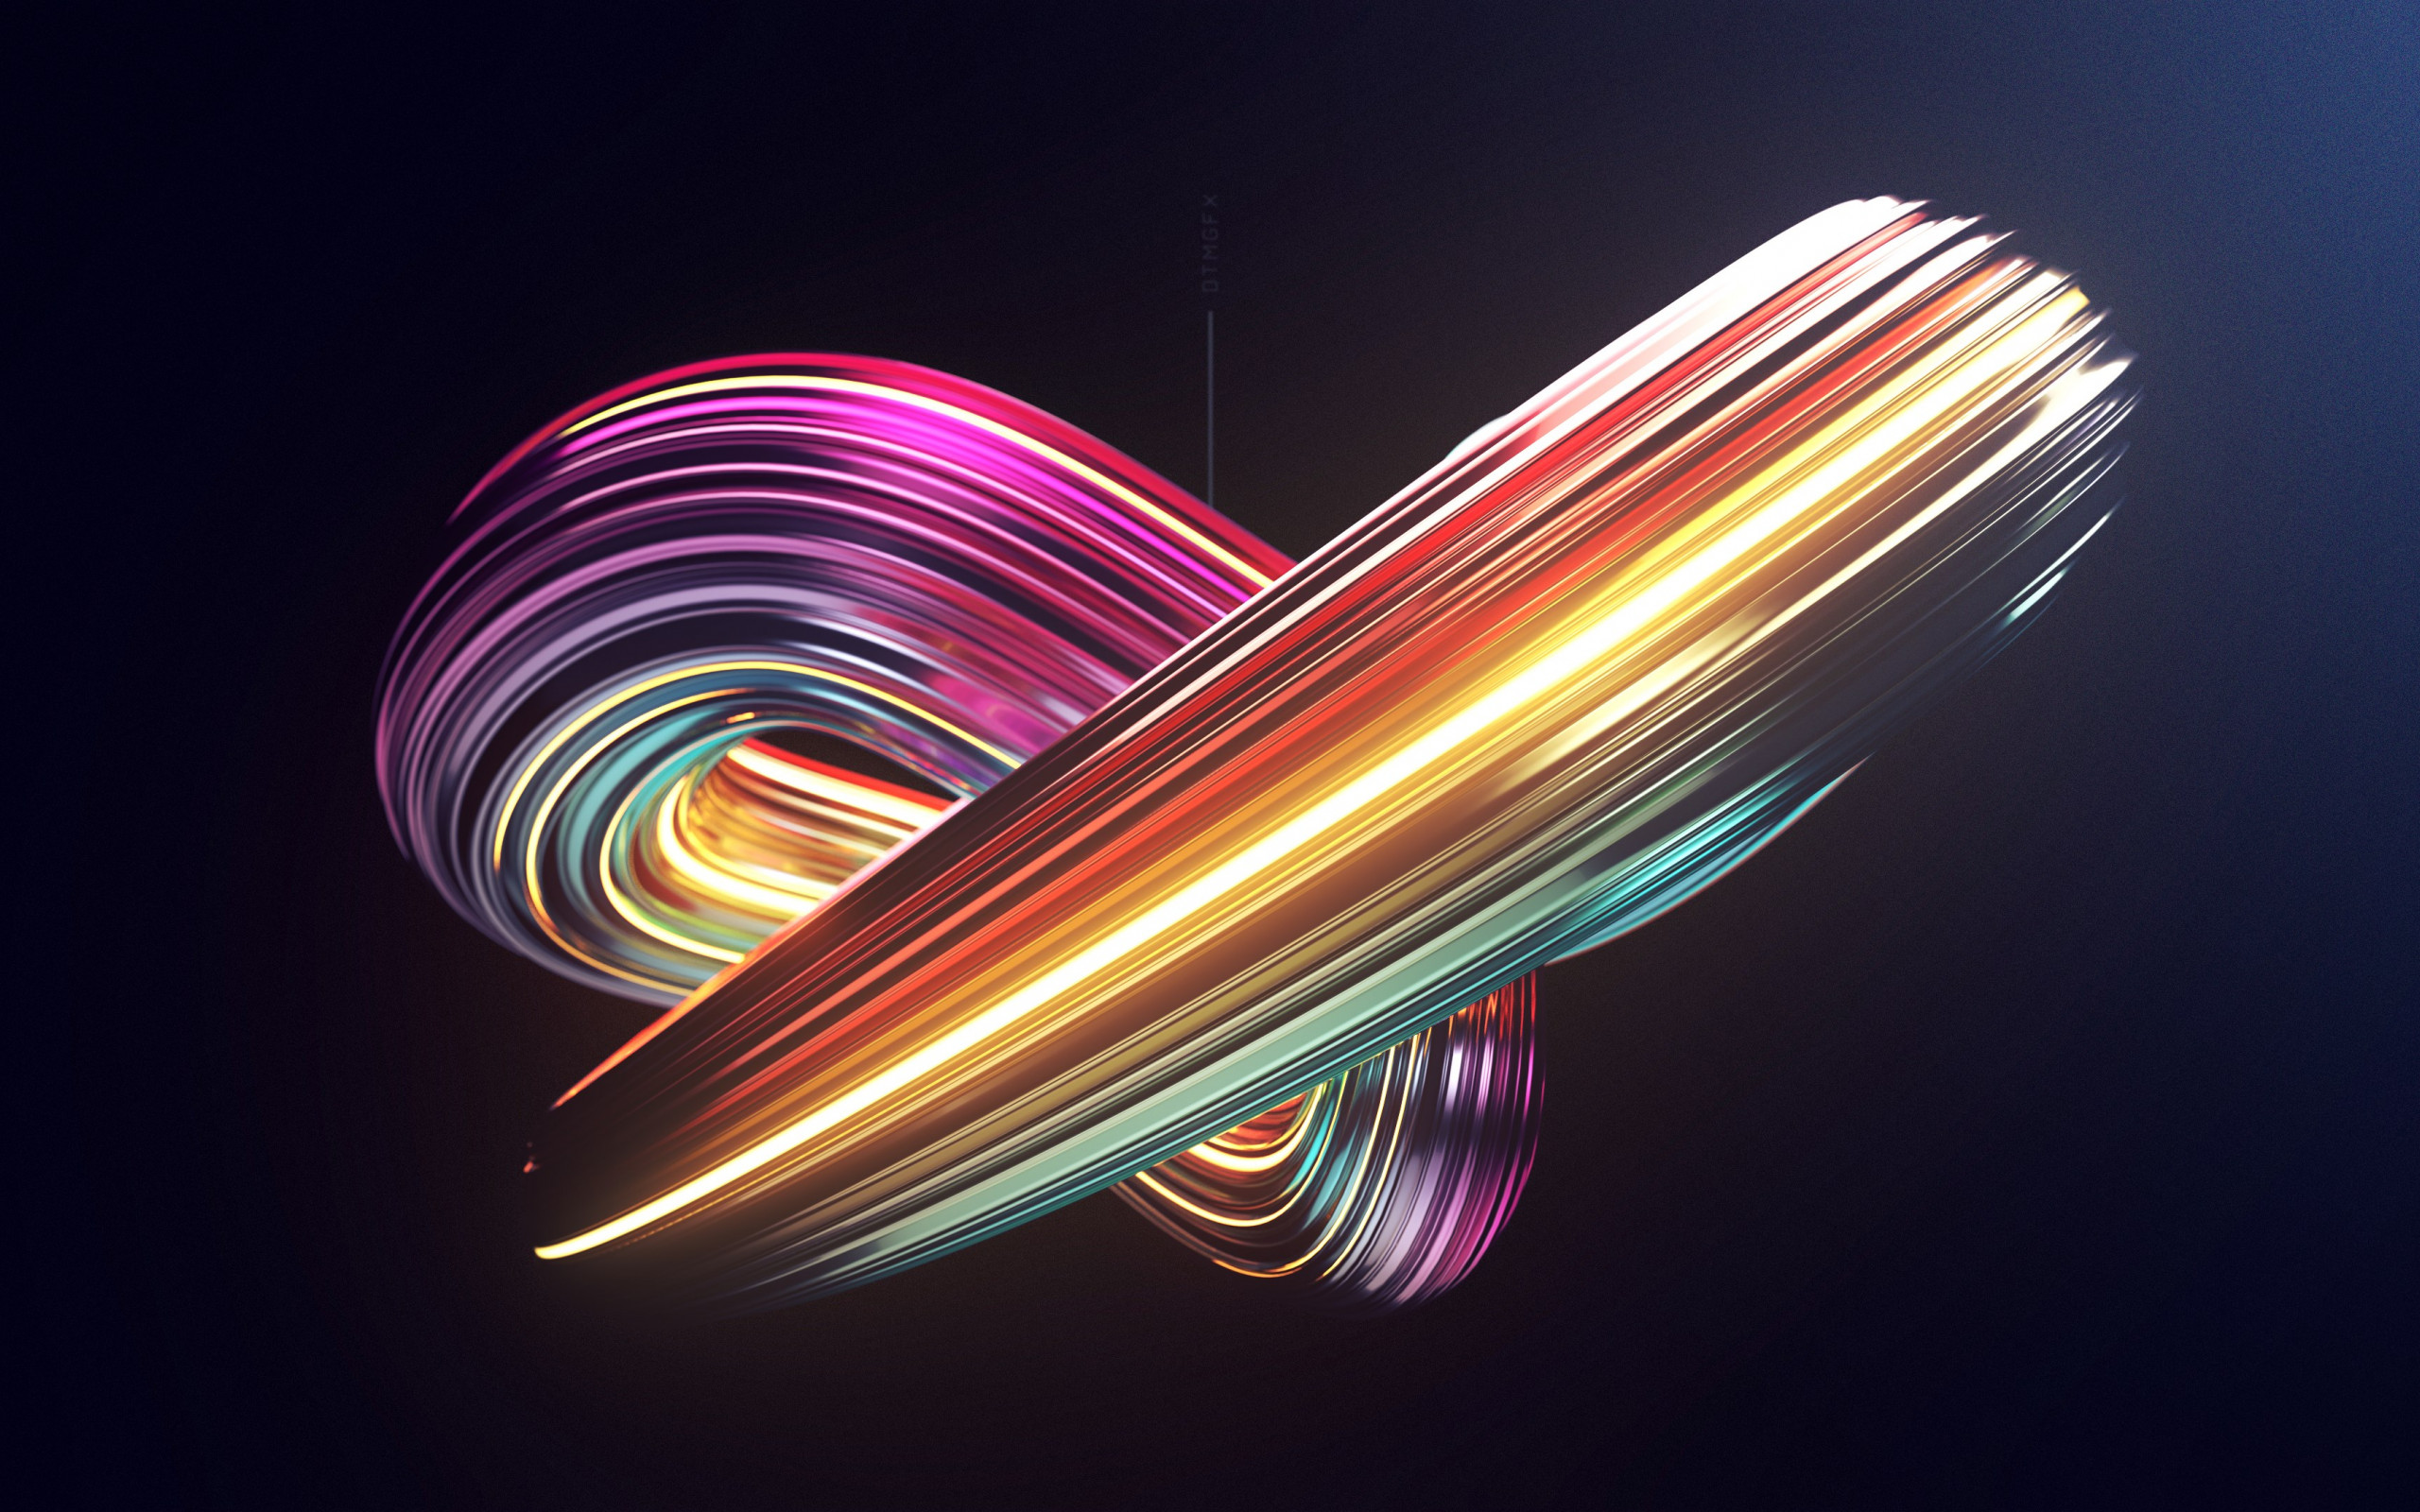 Sweep n Swirl 3D art wallpaper 2560x1600